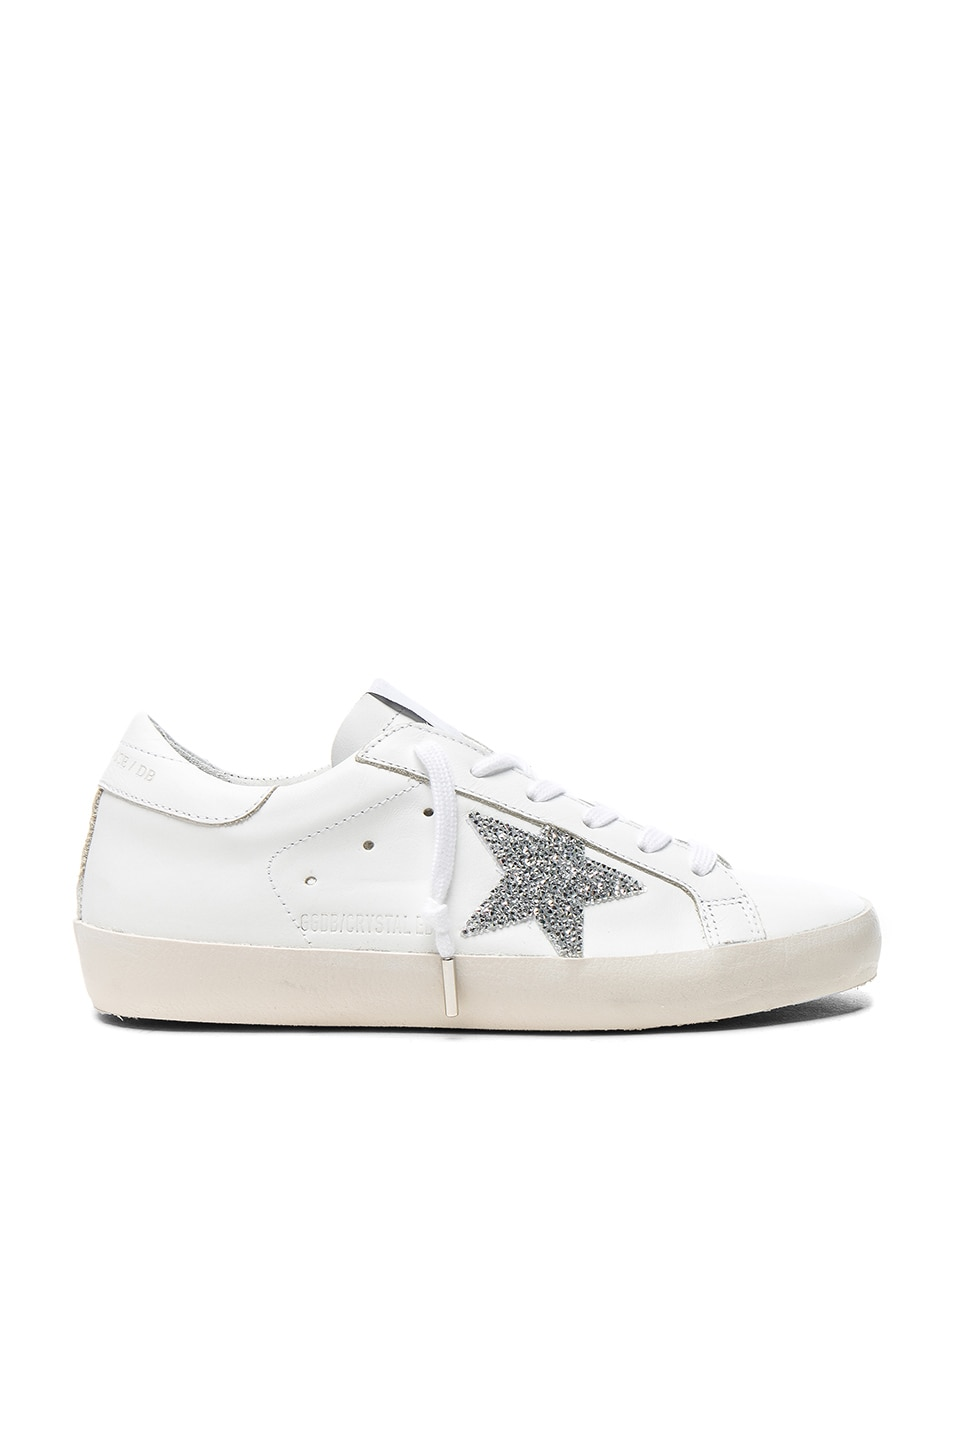 Image 1 of Golden Goose Swarovski Crystal Embellished Superstar Low Sneakers in White